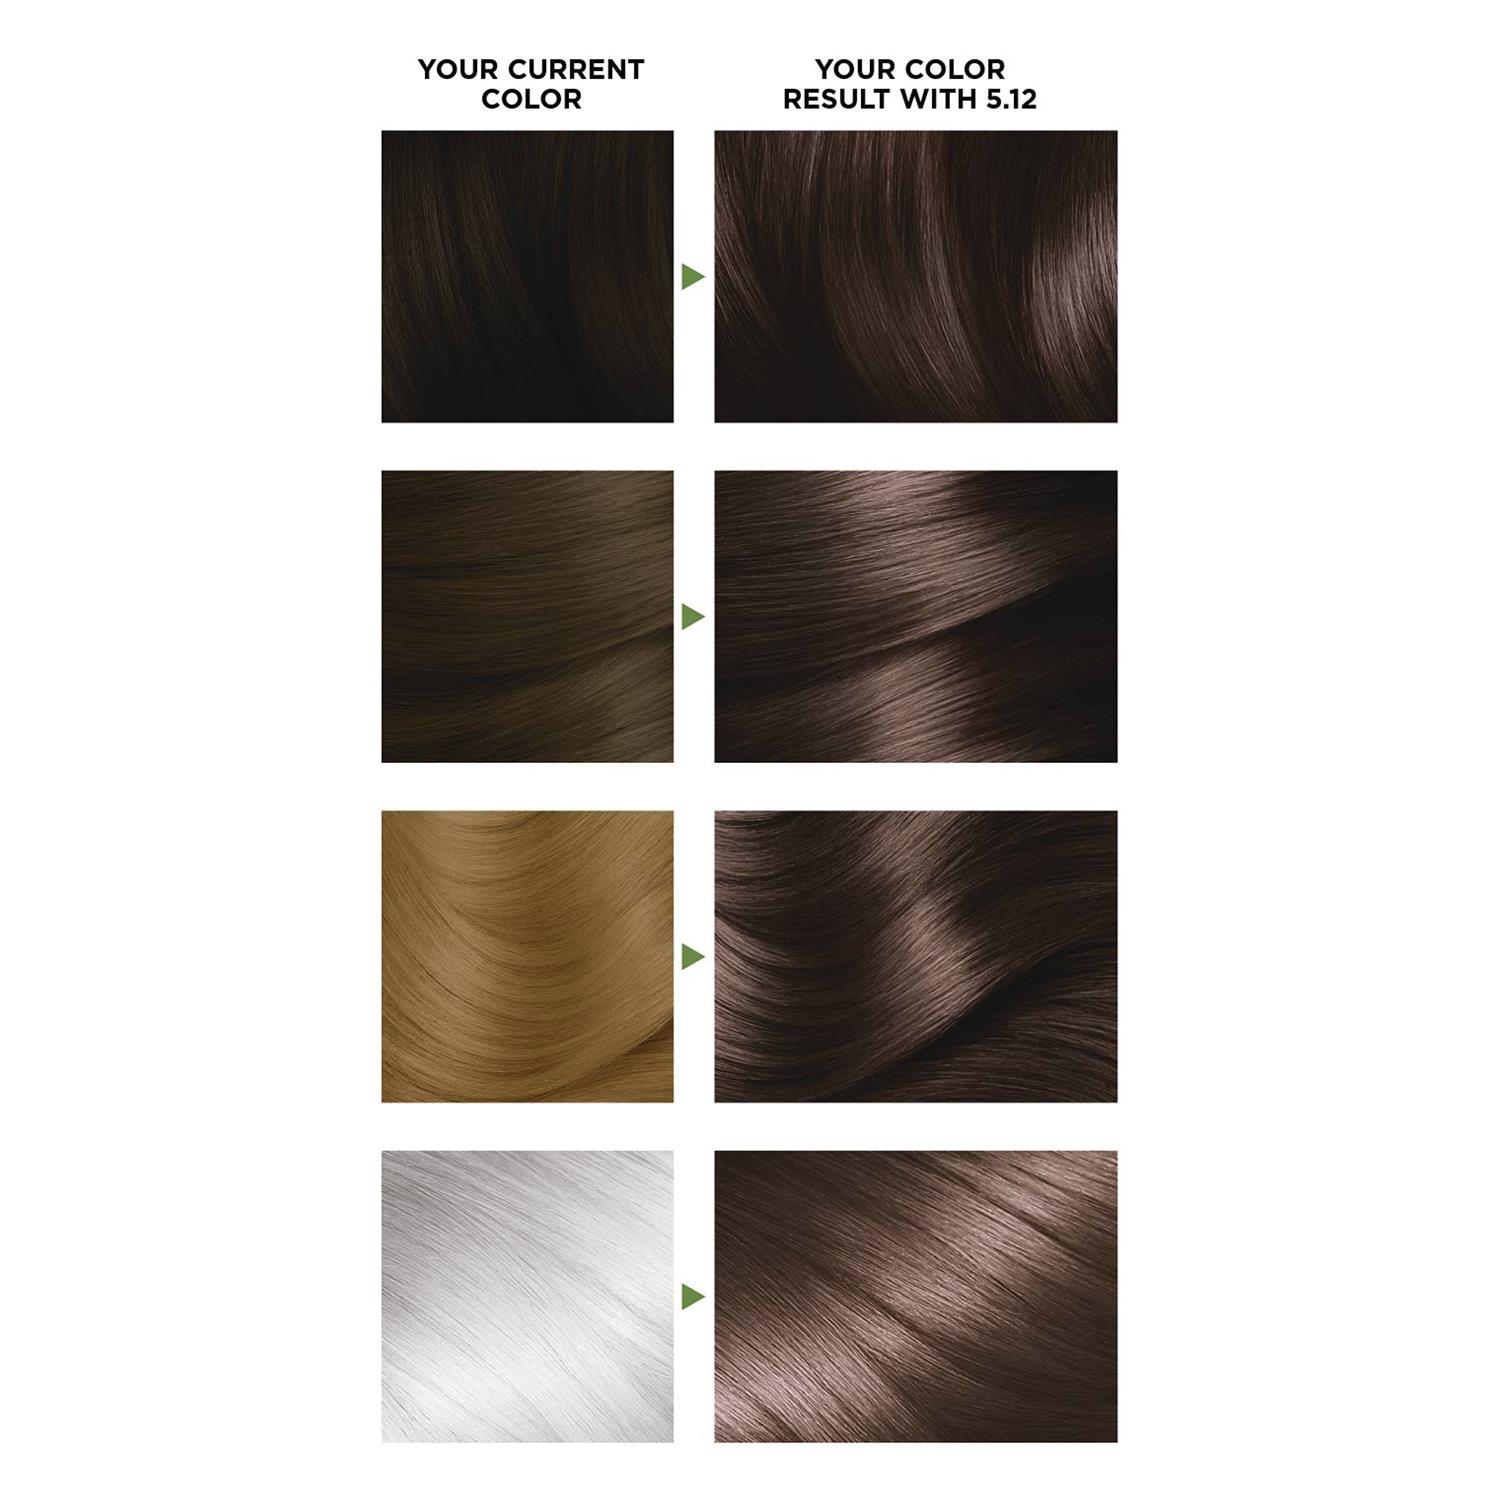 thumbnail 140 - 3 Pack Garnier Nutrisse Permanent Hair Dye With Different Shades